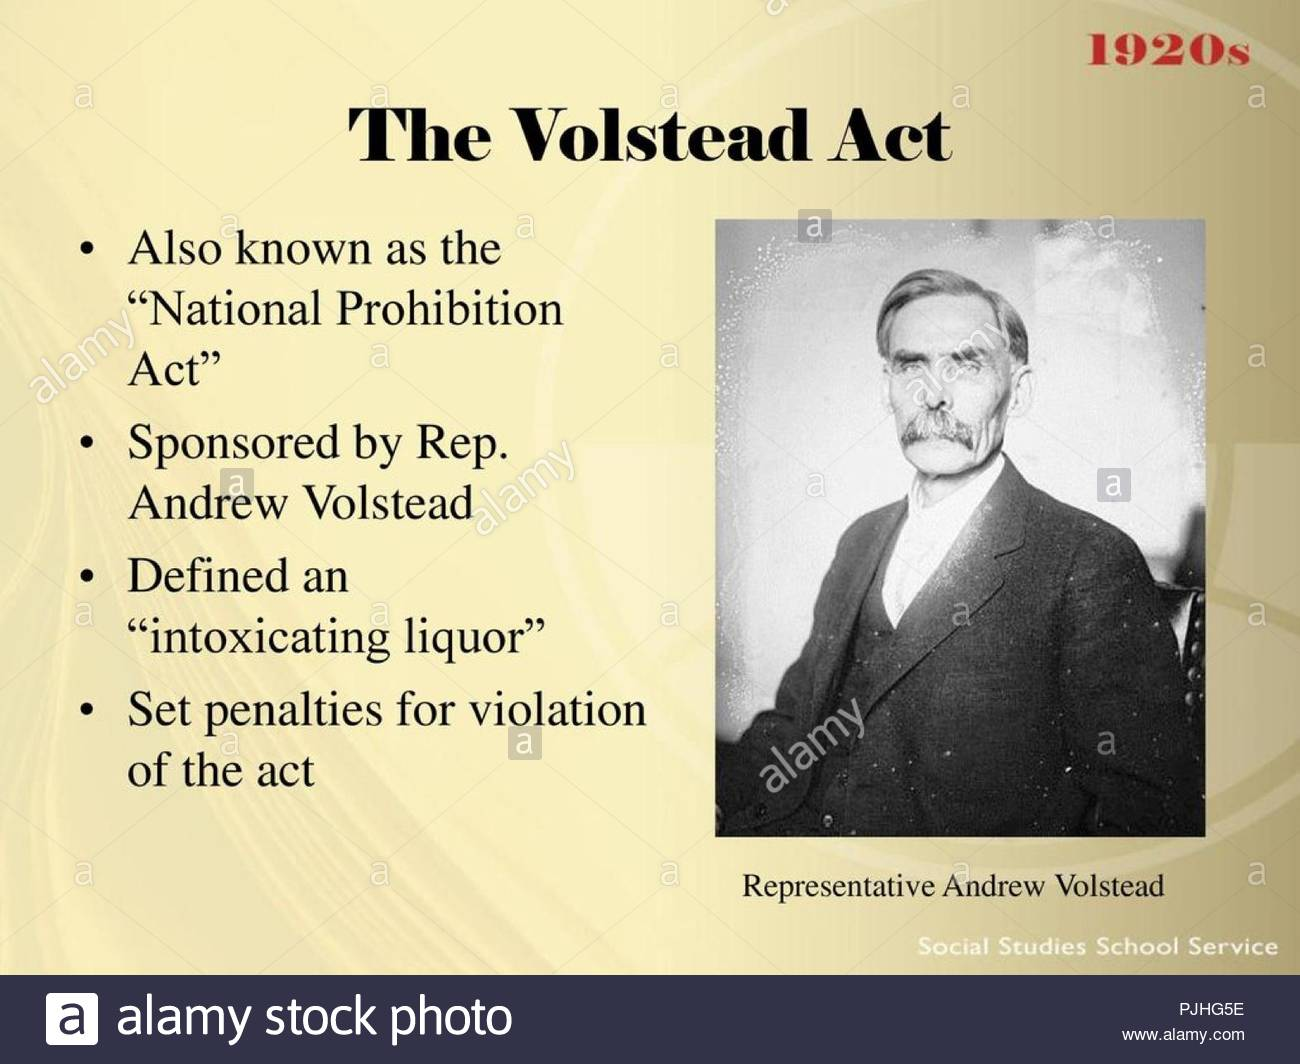 18th amendment prohibition stock photos & 18th amendment prohibition